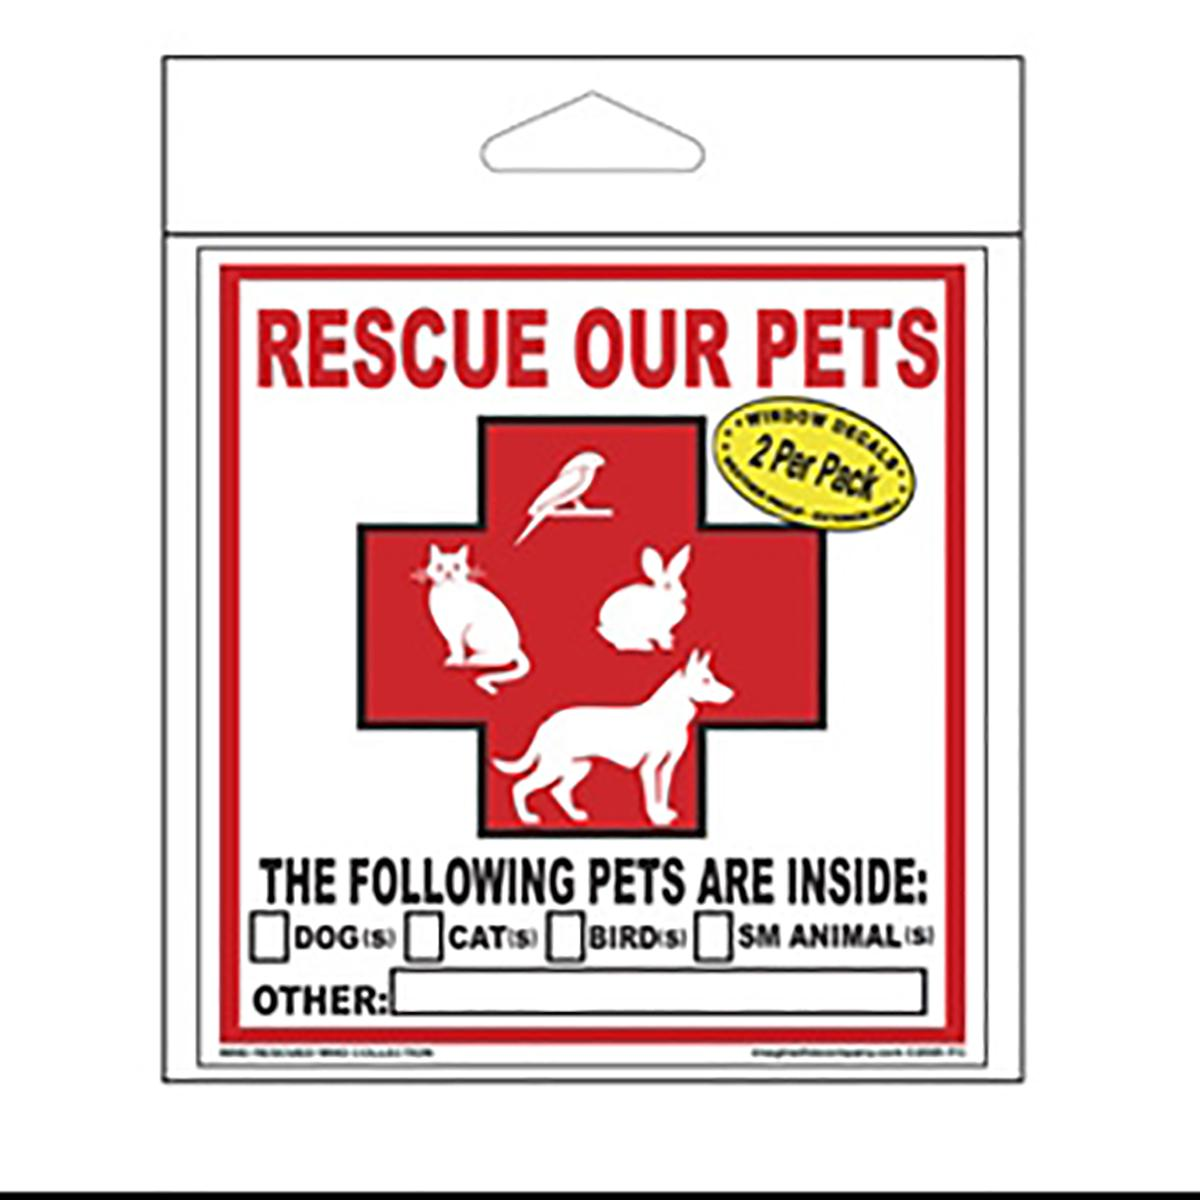 Rescue Our Pets Emergency Decals - Pets